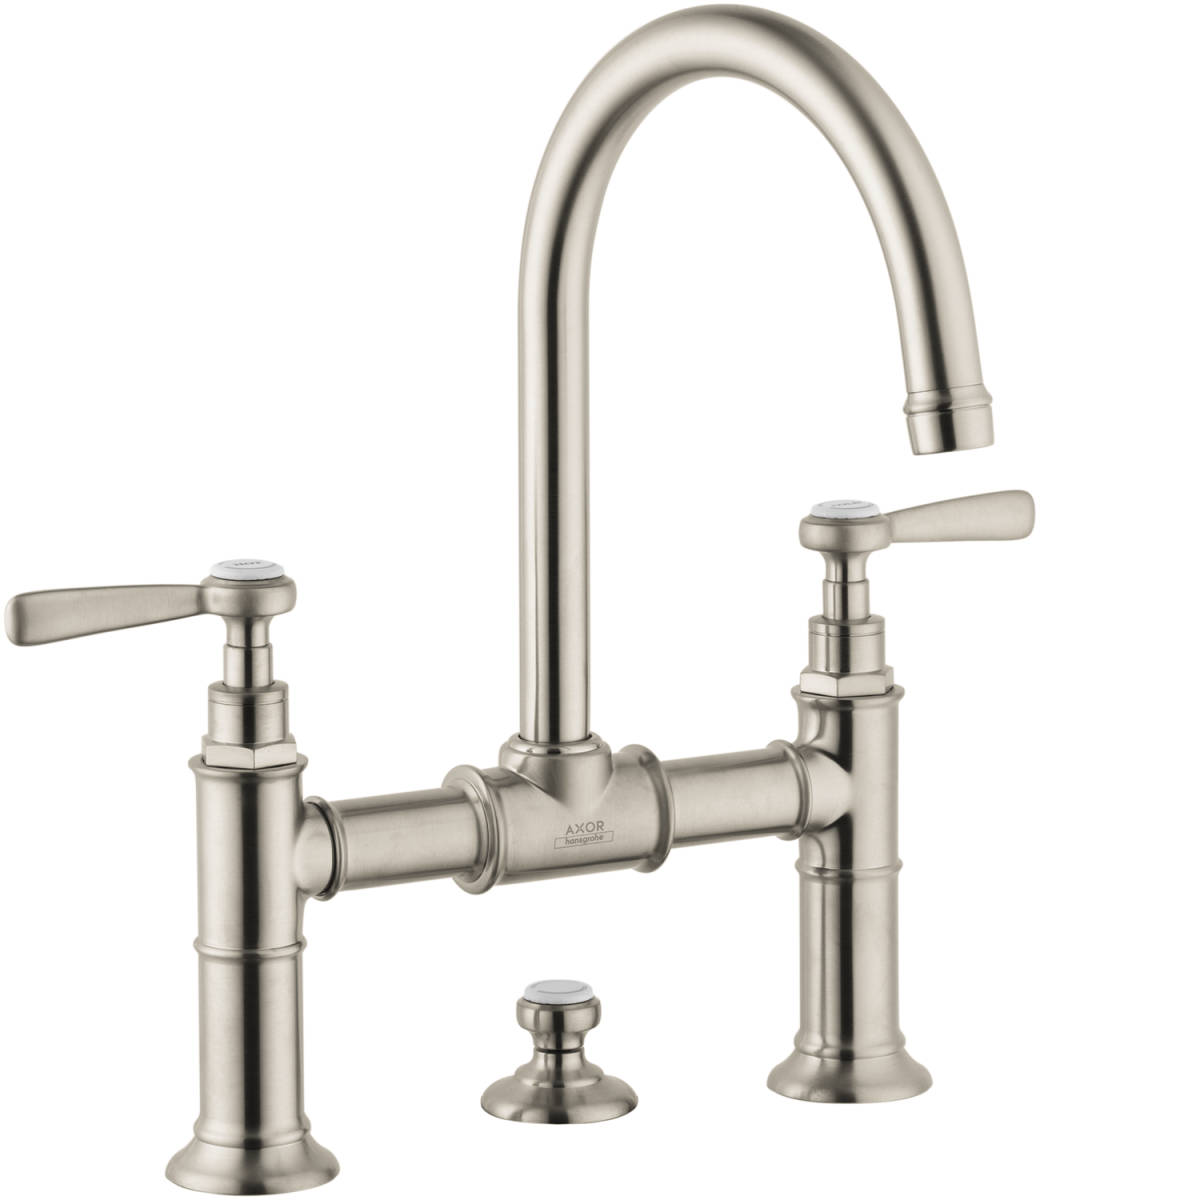 2-handle basin mixer 220 with lever handles and pop-up waste set, Brushed Nickel, 16511821